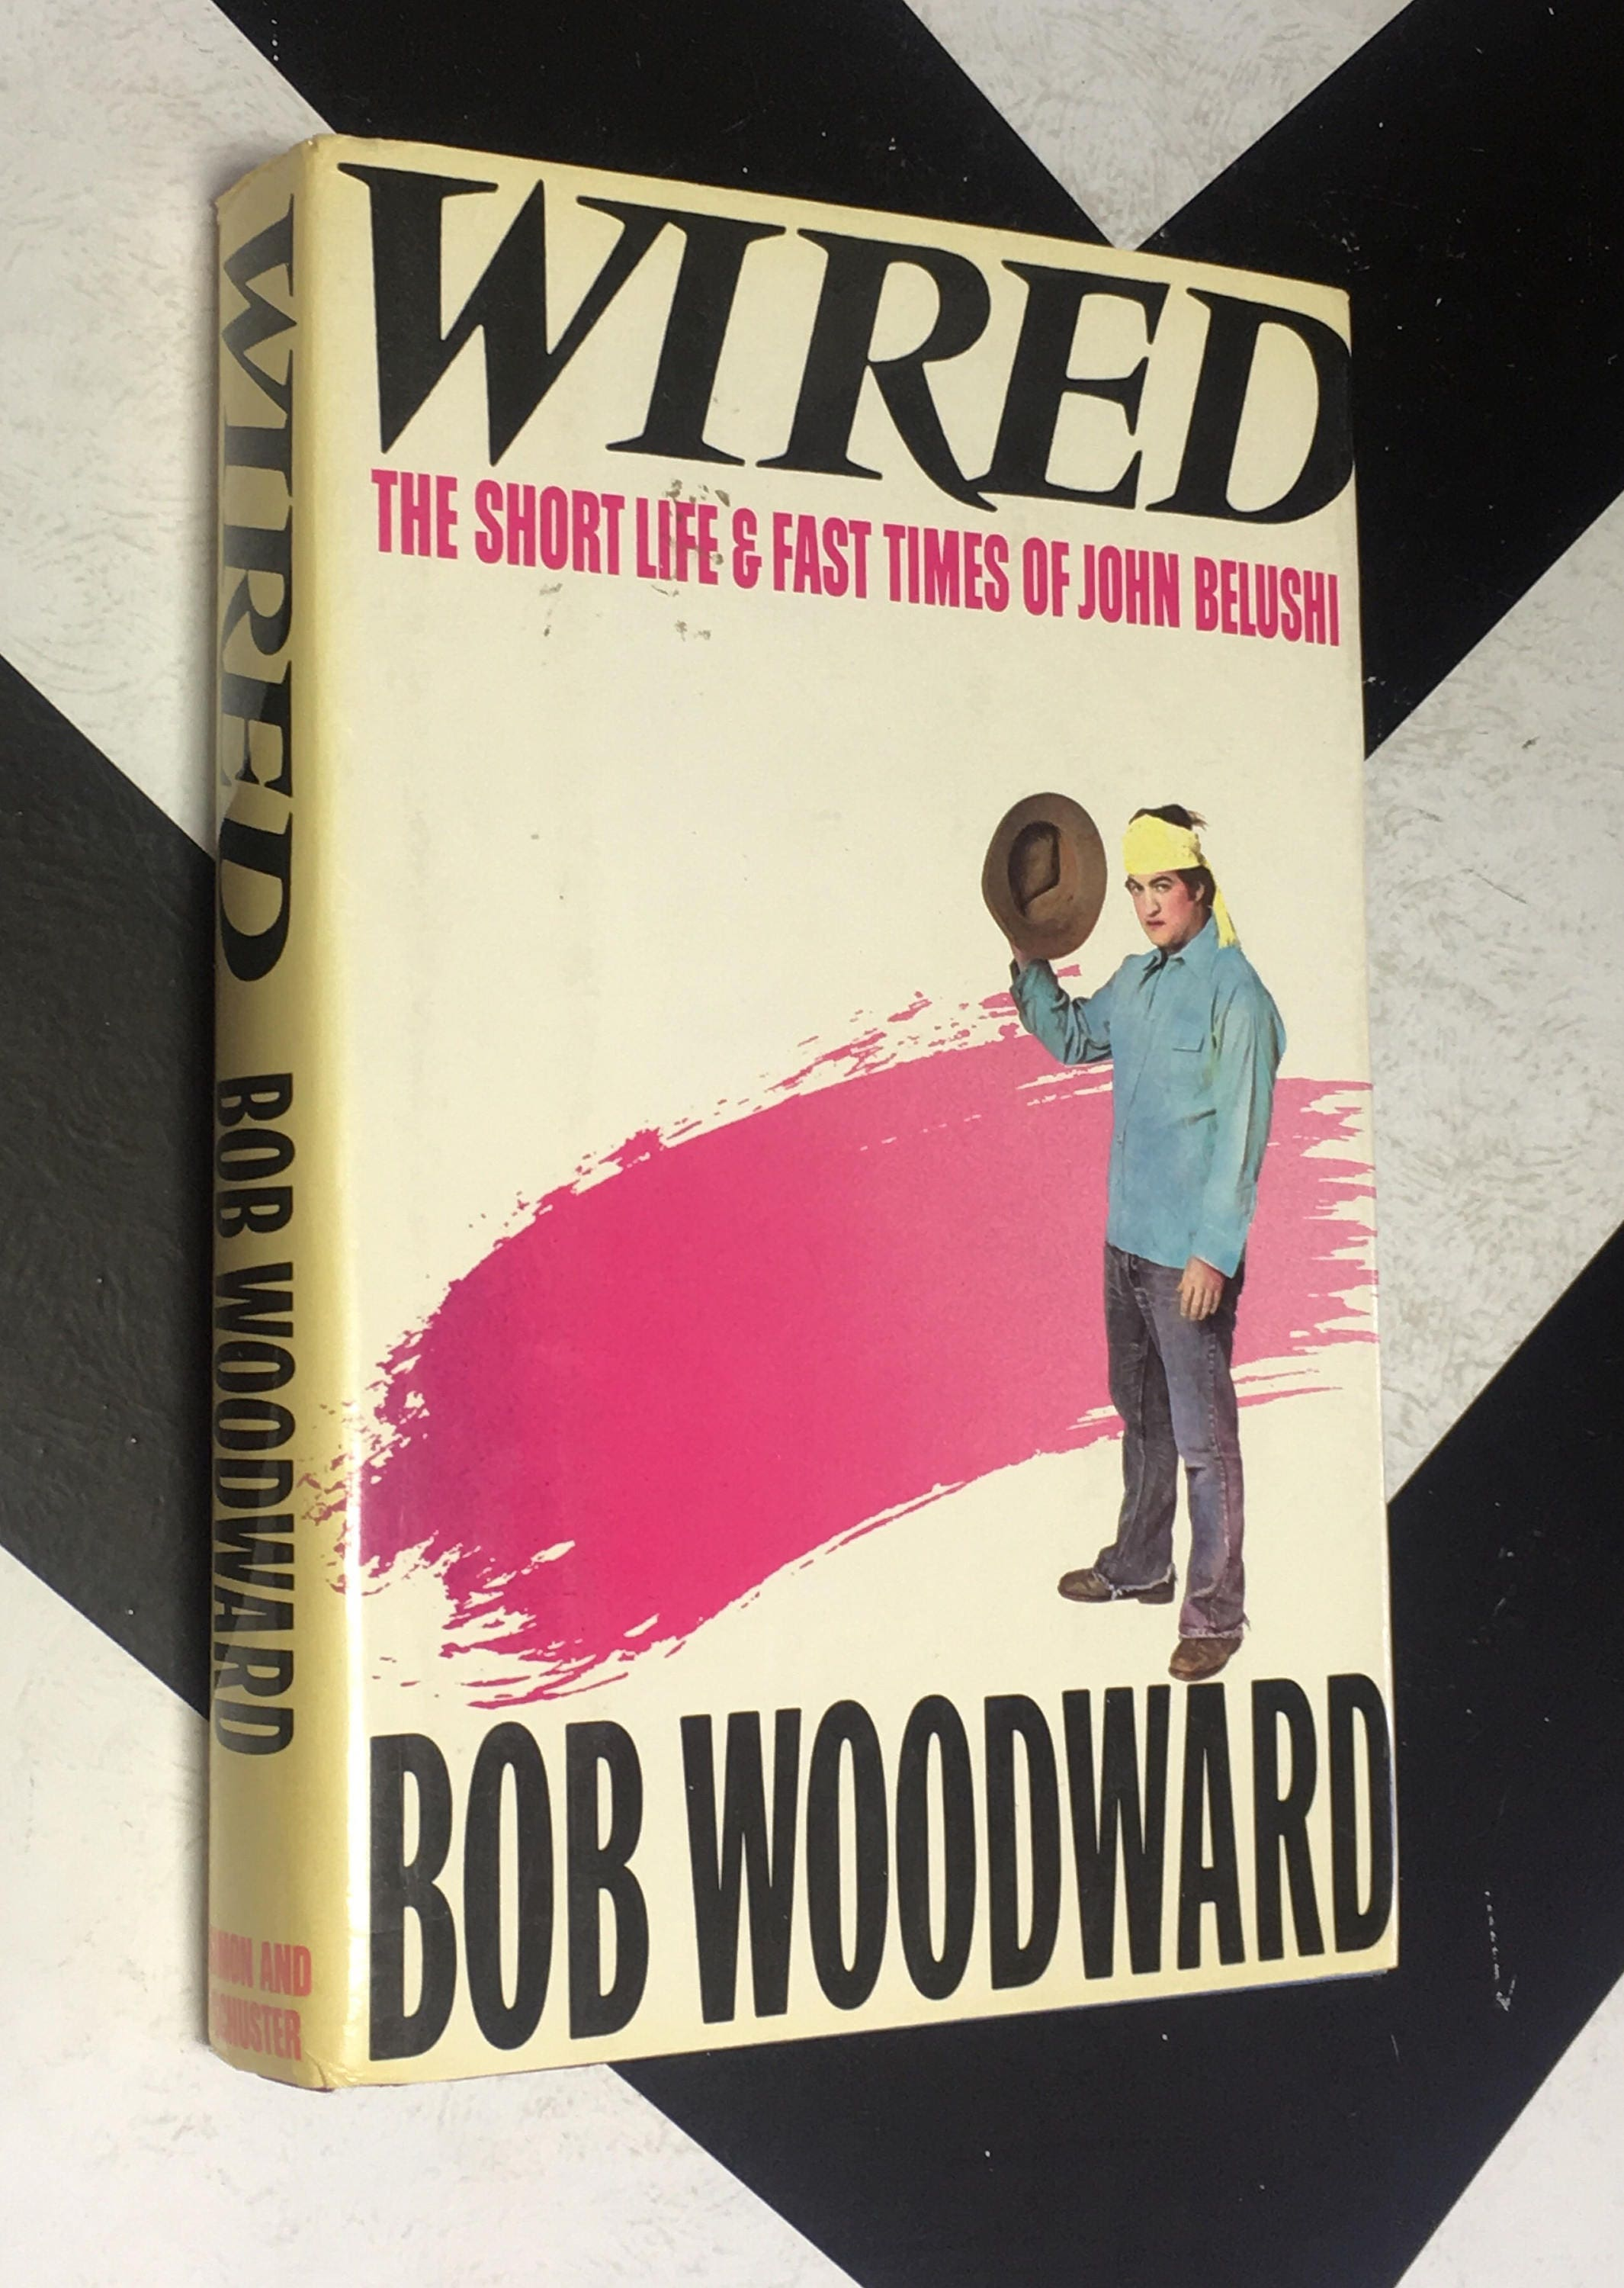 Wired: The Short Life and Fast Times of John Belushi by Bob | Etsy